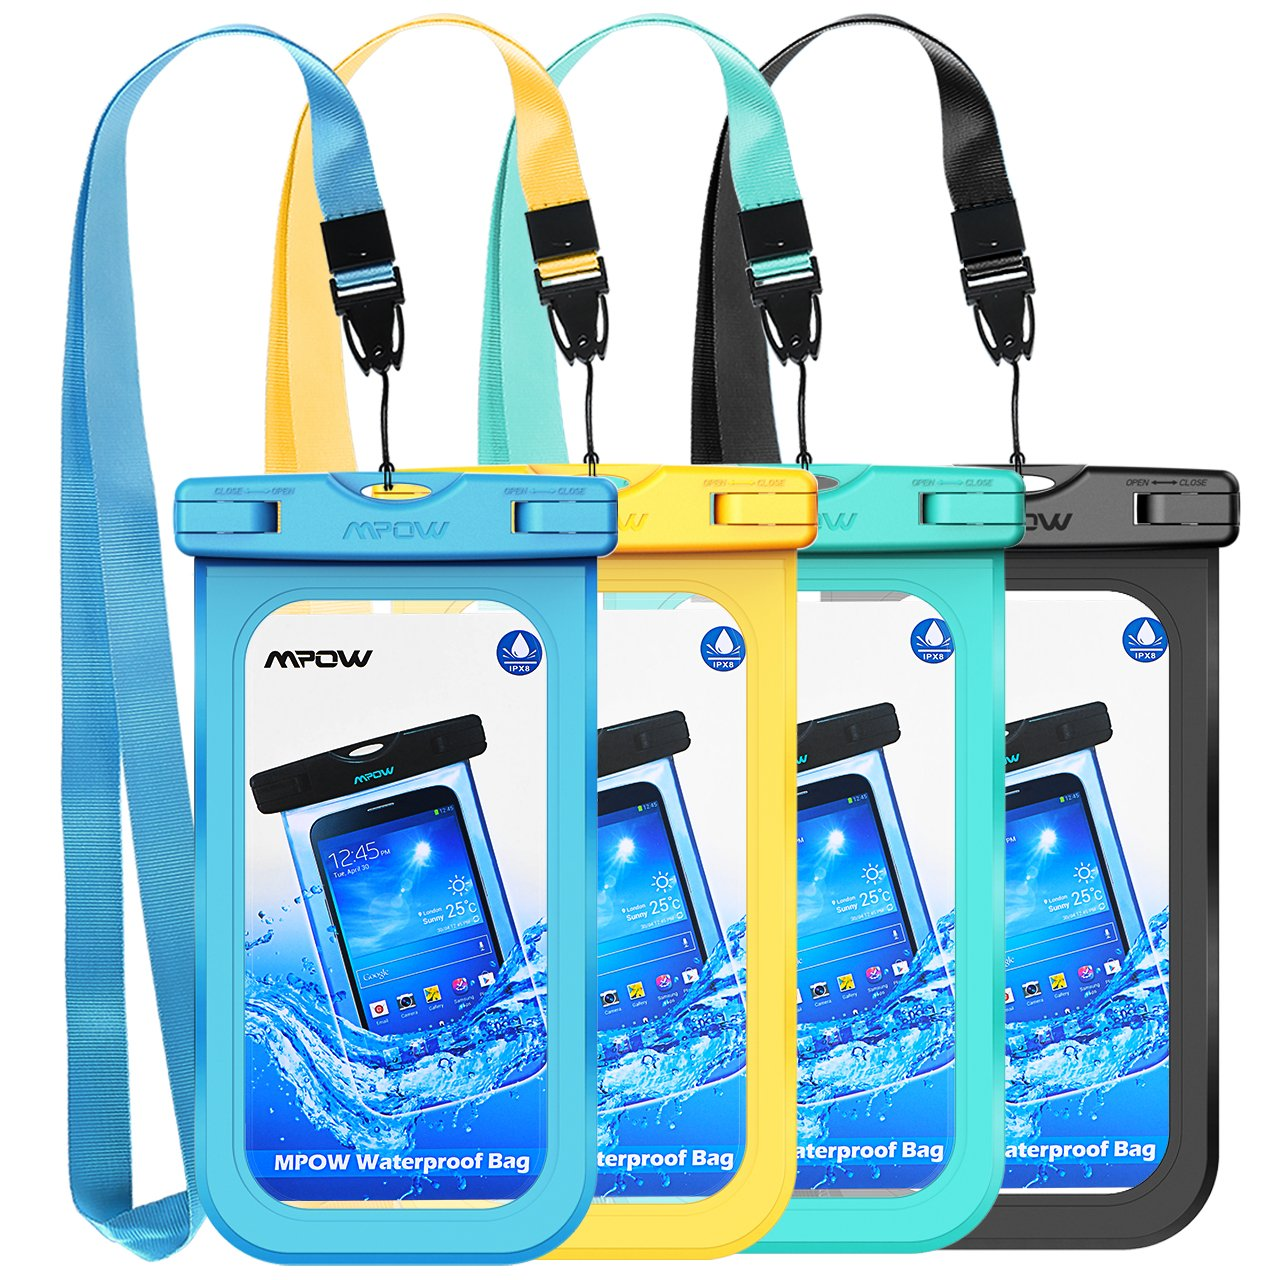 Mpow Waterproof Phone Pouch, IPX8 Universal Waterproof Case Underwater Dry Bag 4-Pack Compatible for iPhone X/8/8P/7/7P, Galaxy S9/S9P/S8/Note 8, Google Pixel/HTC up to 6.0'' (Blue Yellow Green Black)